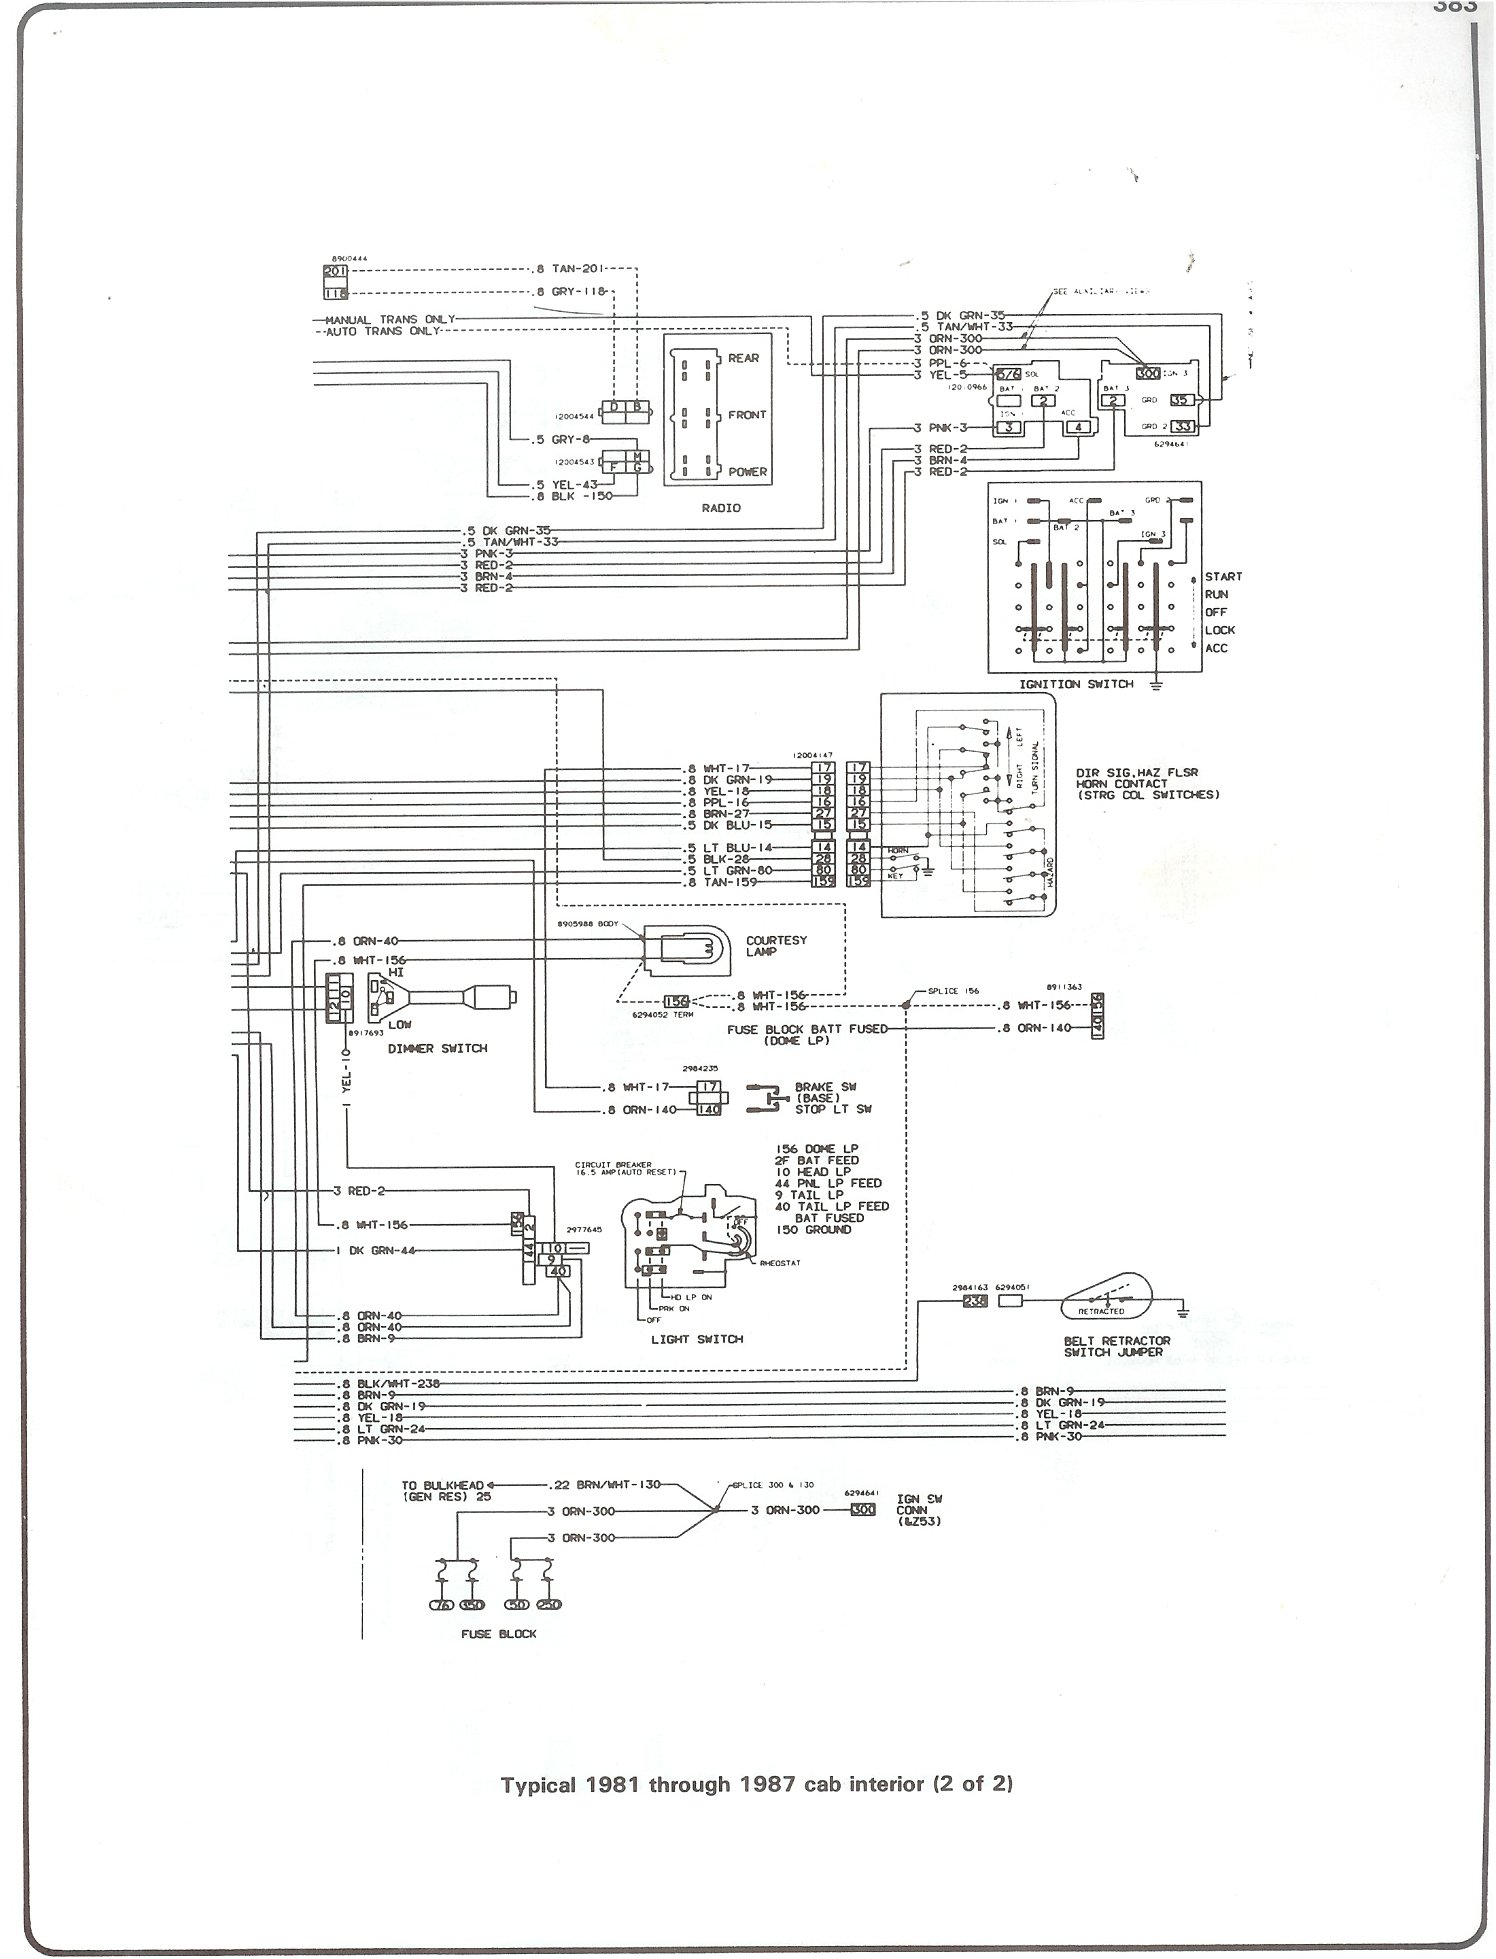 Wiring Diagram For 1977 Gmc Sierra Grande Schematics Diagrams 1999 S10 Steering Column Complete 73 87 Rh Forum 87chevytrucks Com 2003 Radio